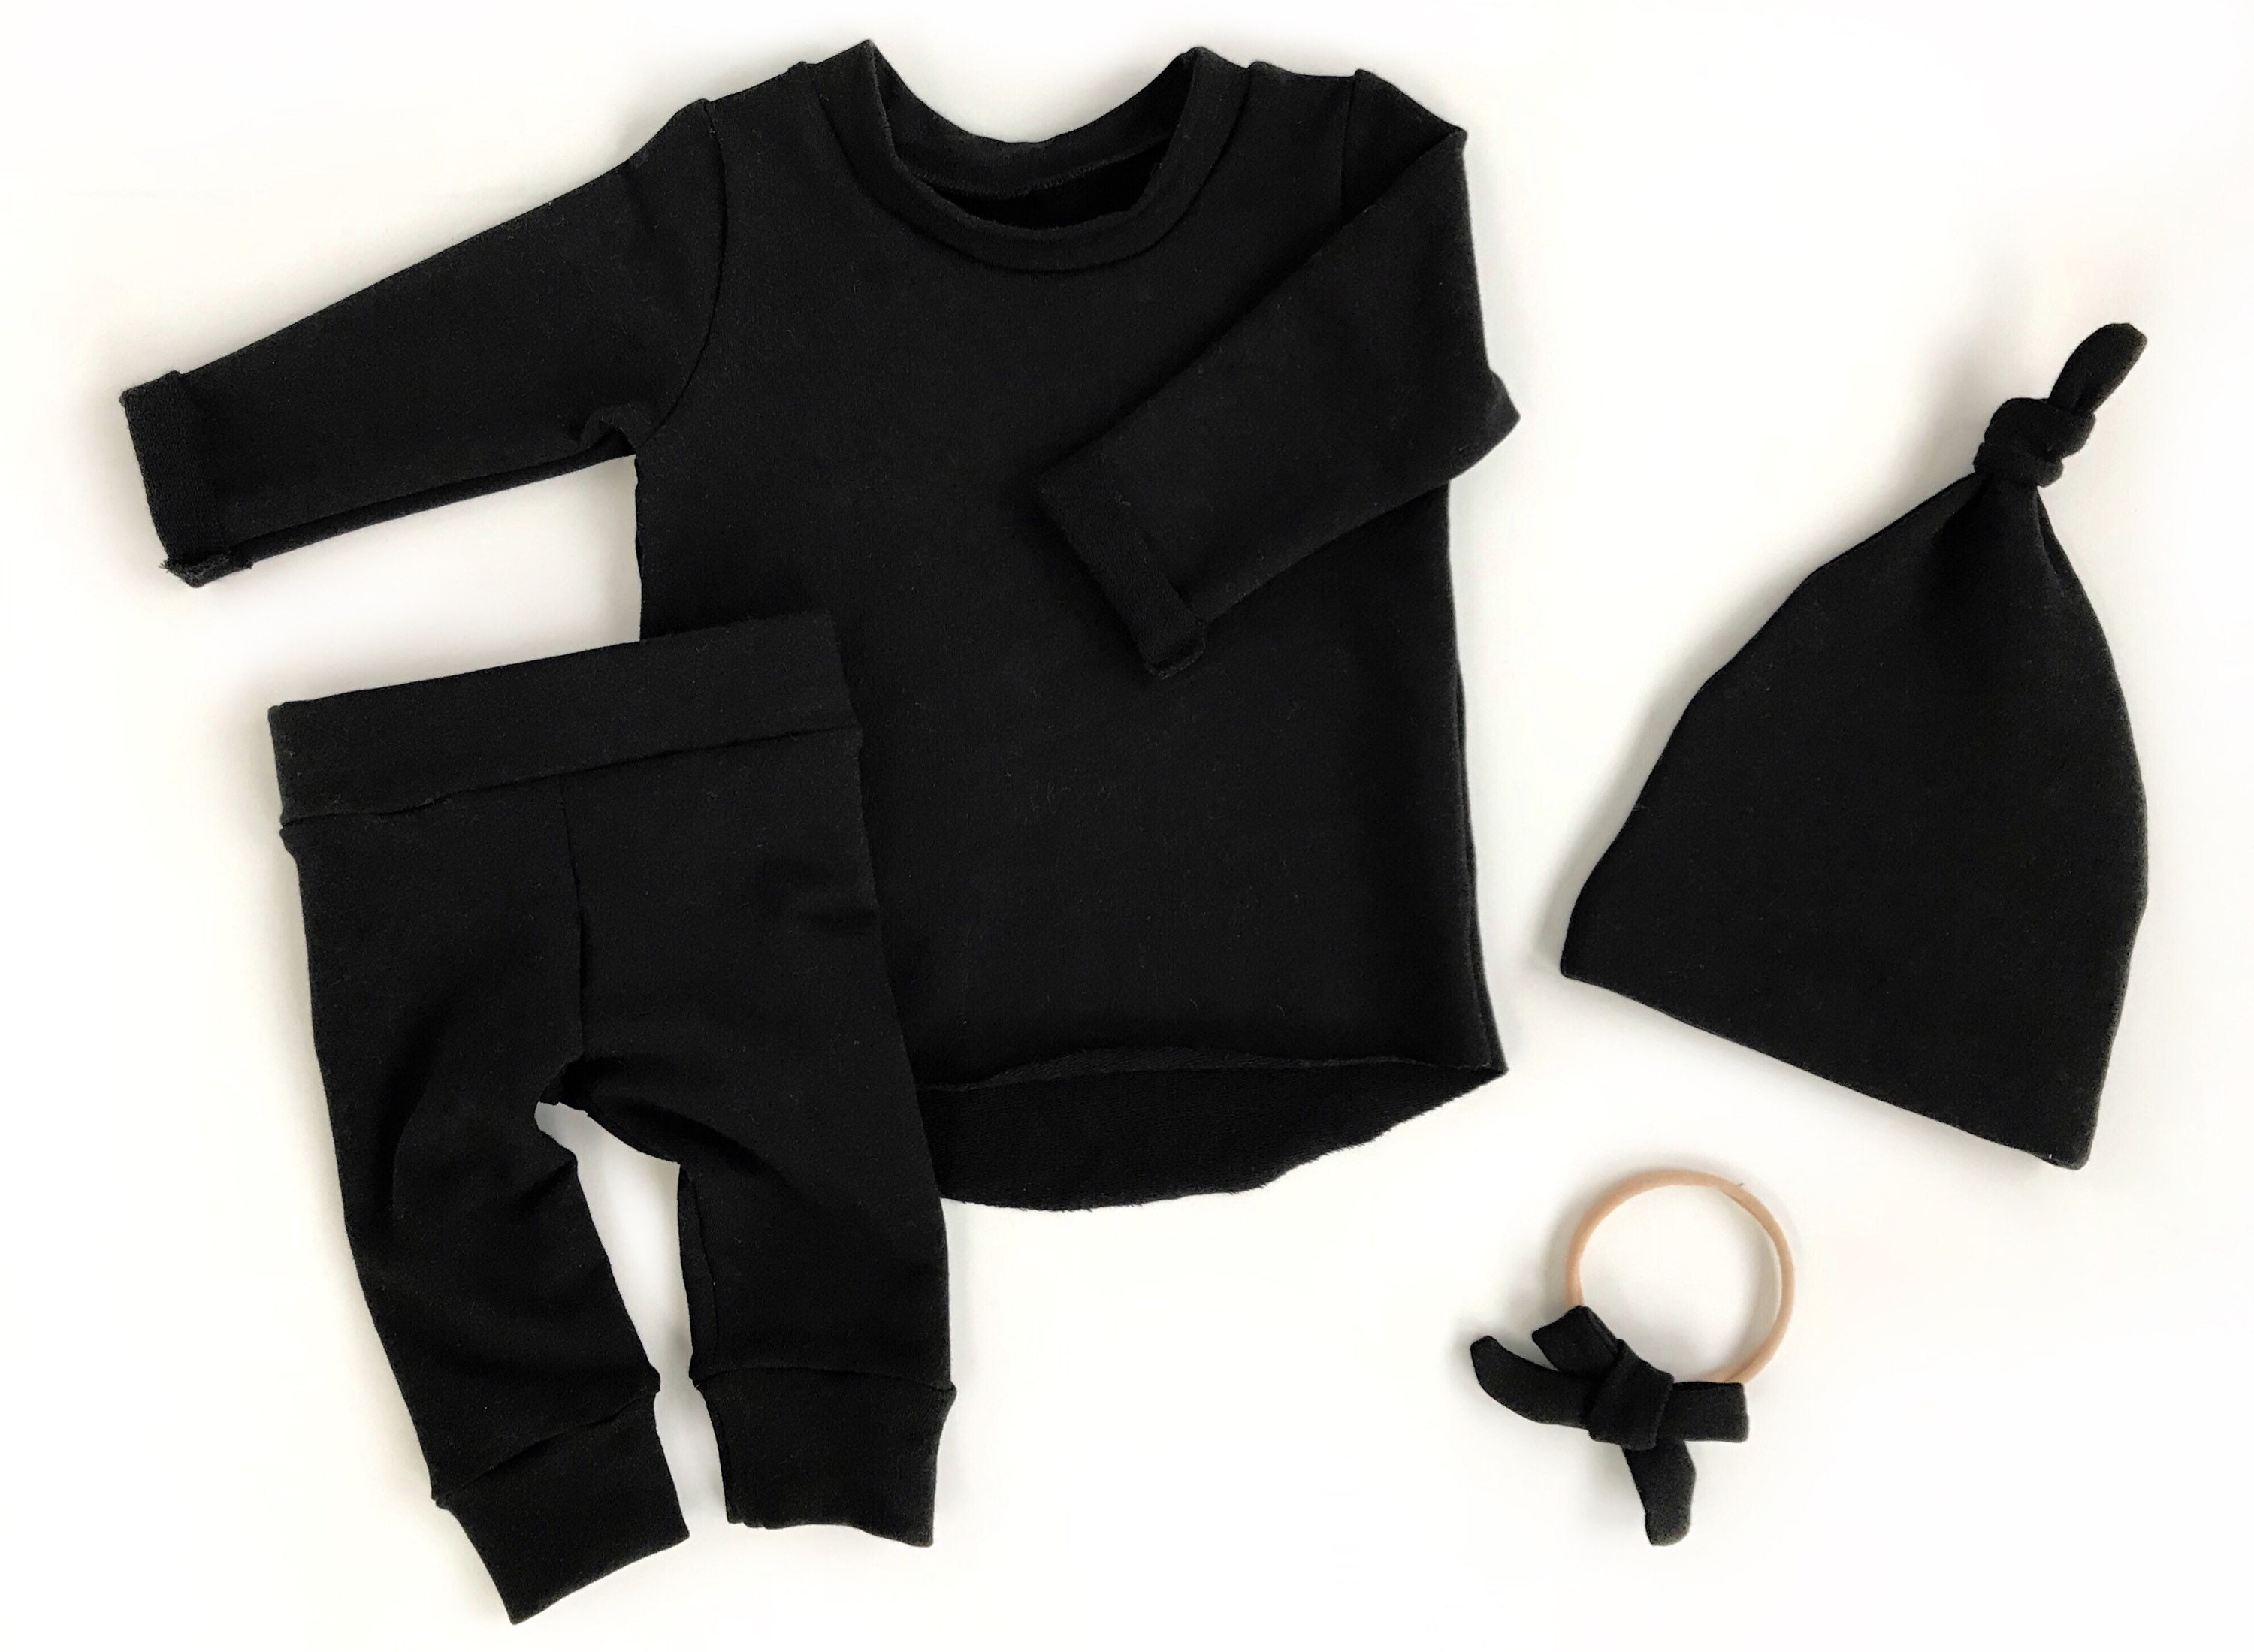 8af77b43fefd Black Newborn Boy Coming Home Outfit Newborn Photo Outfit